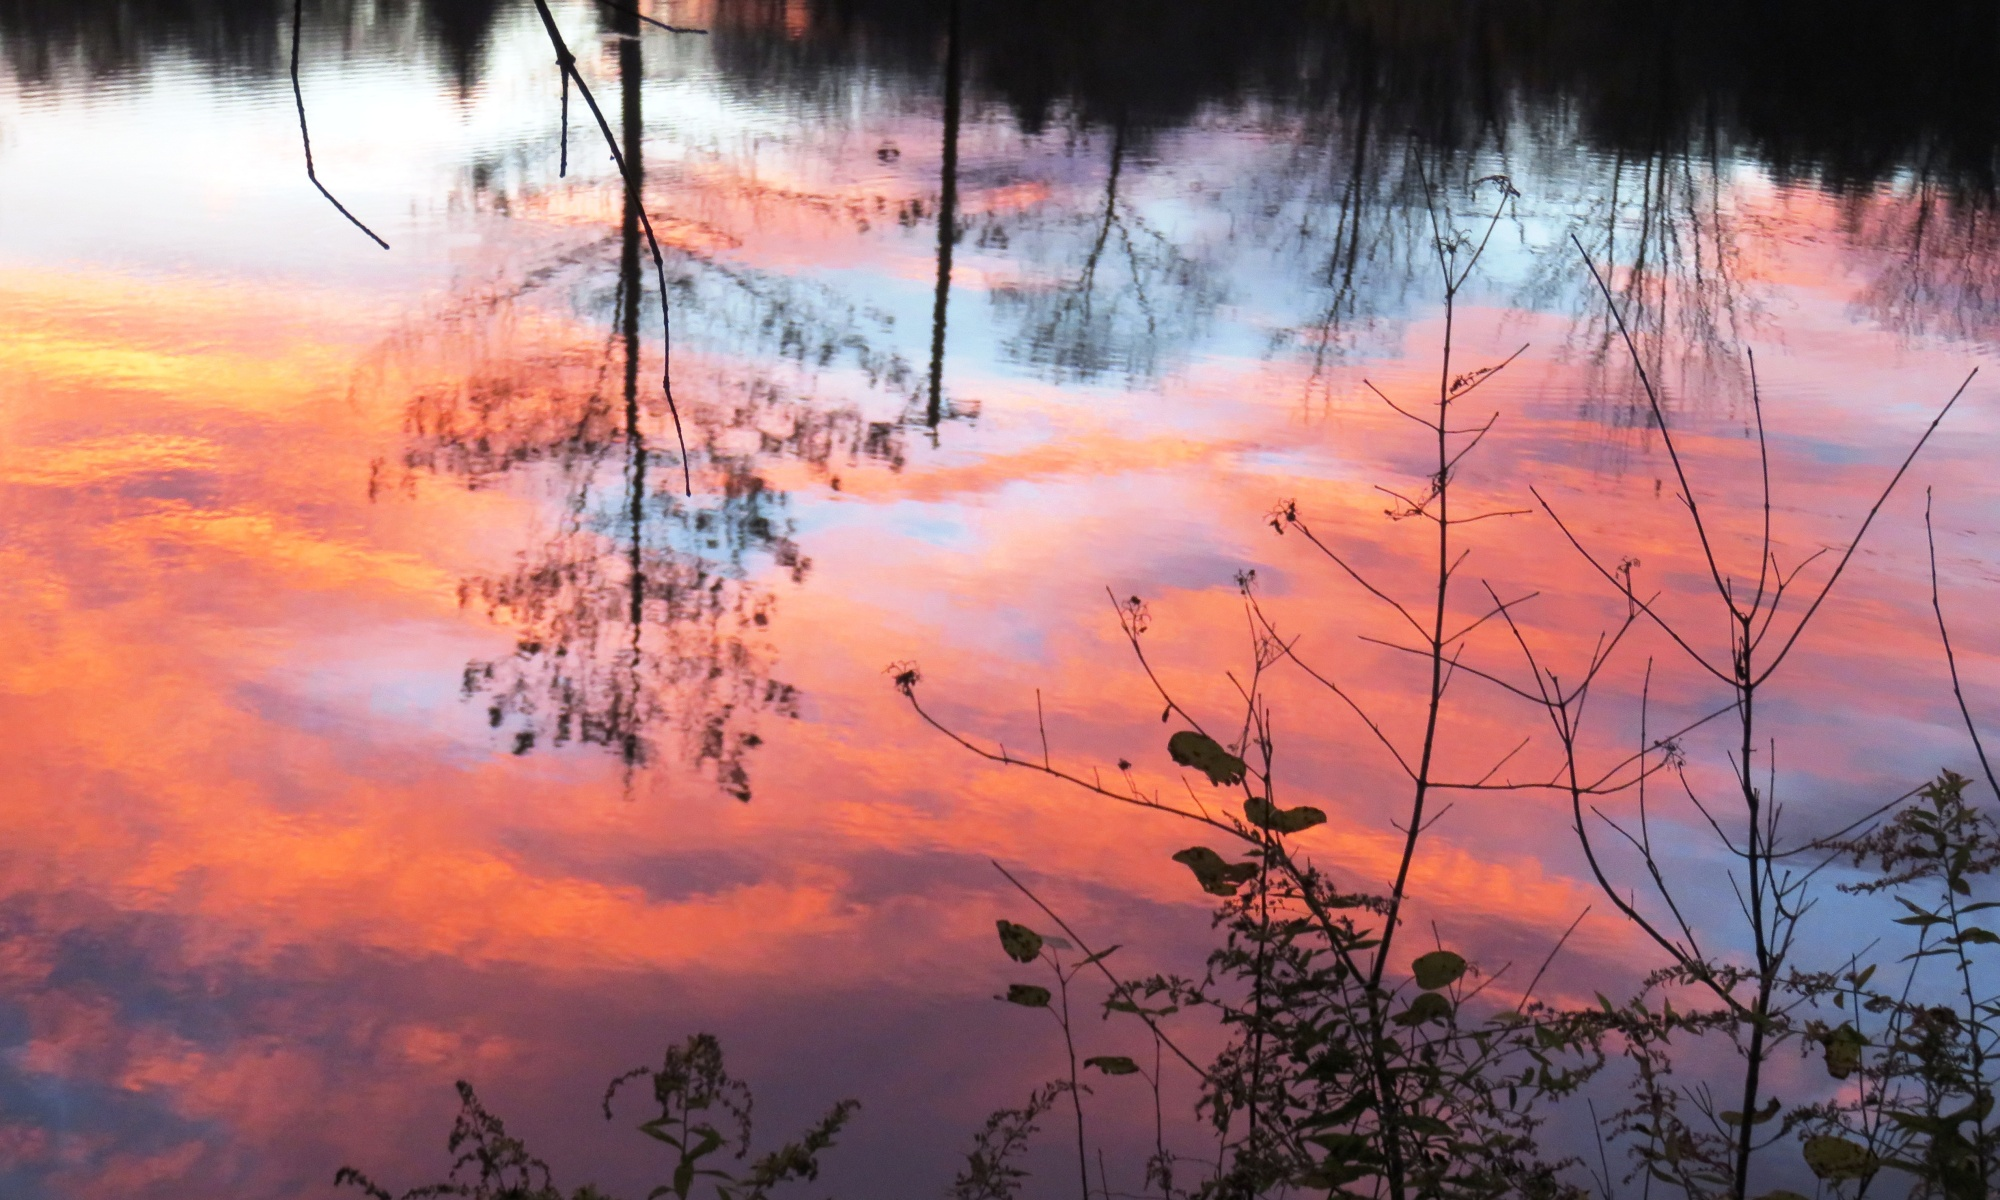 Firey red, orange and blue sky reflected in water with black silhoutted trees and weeds